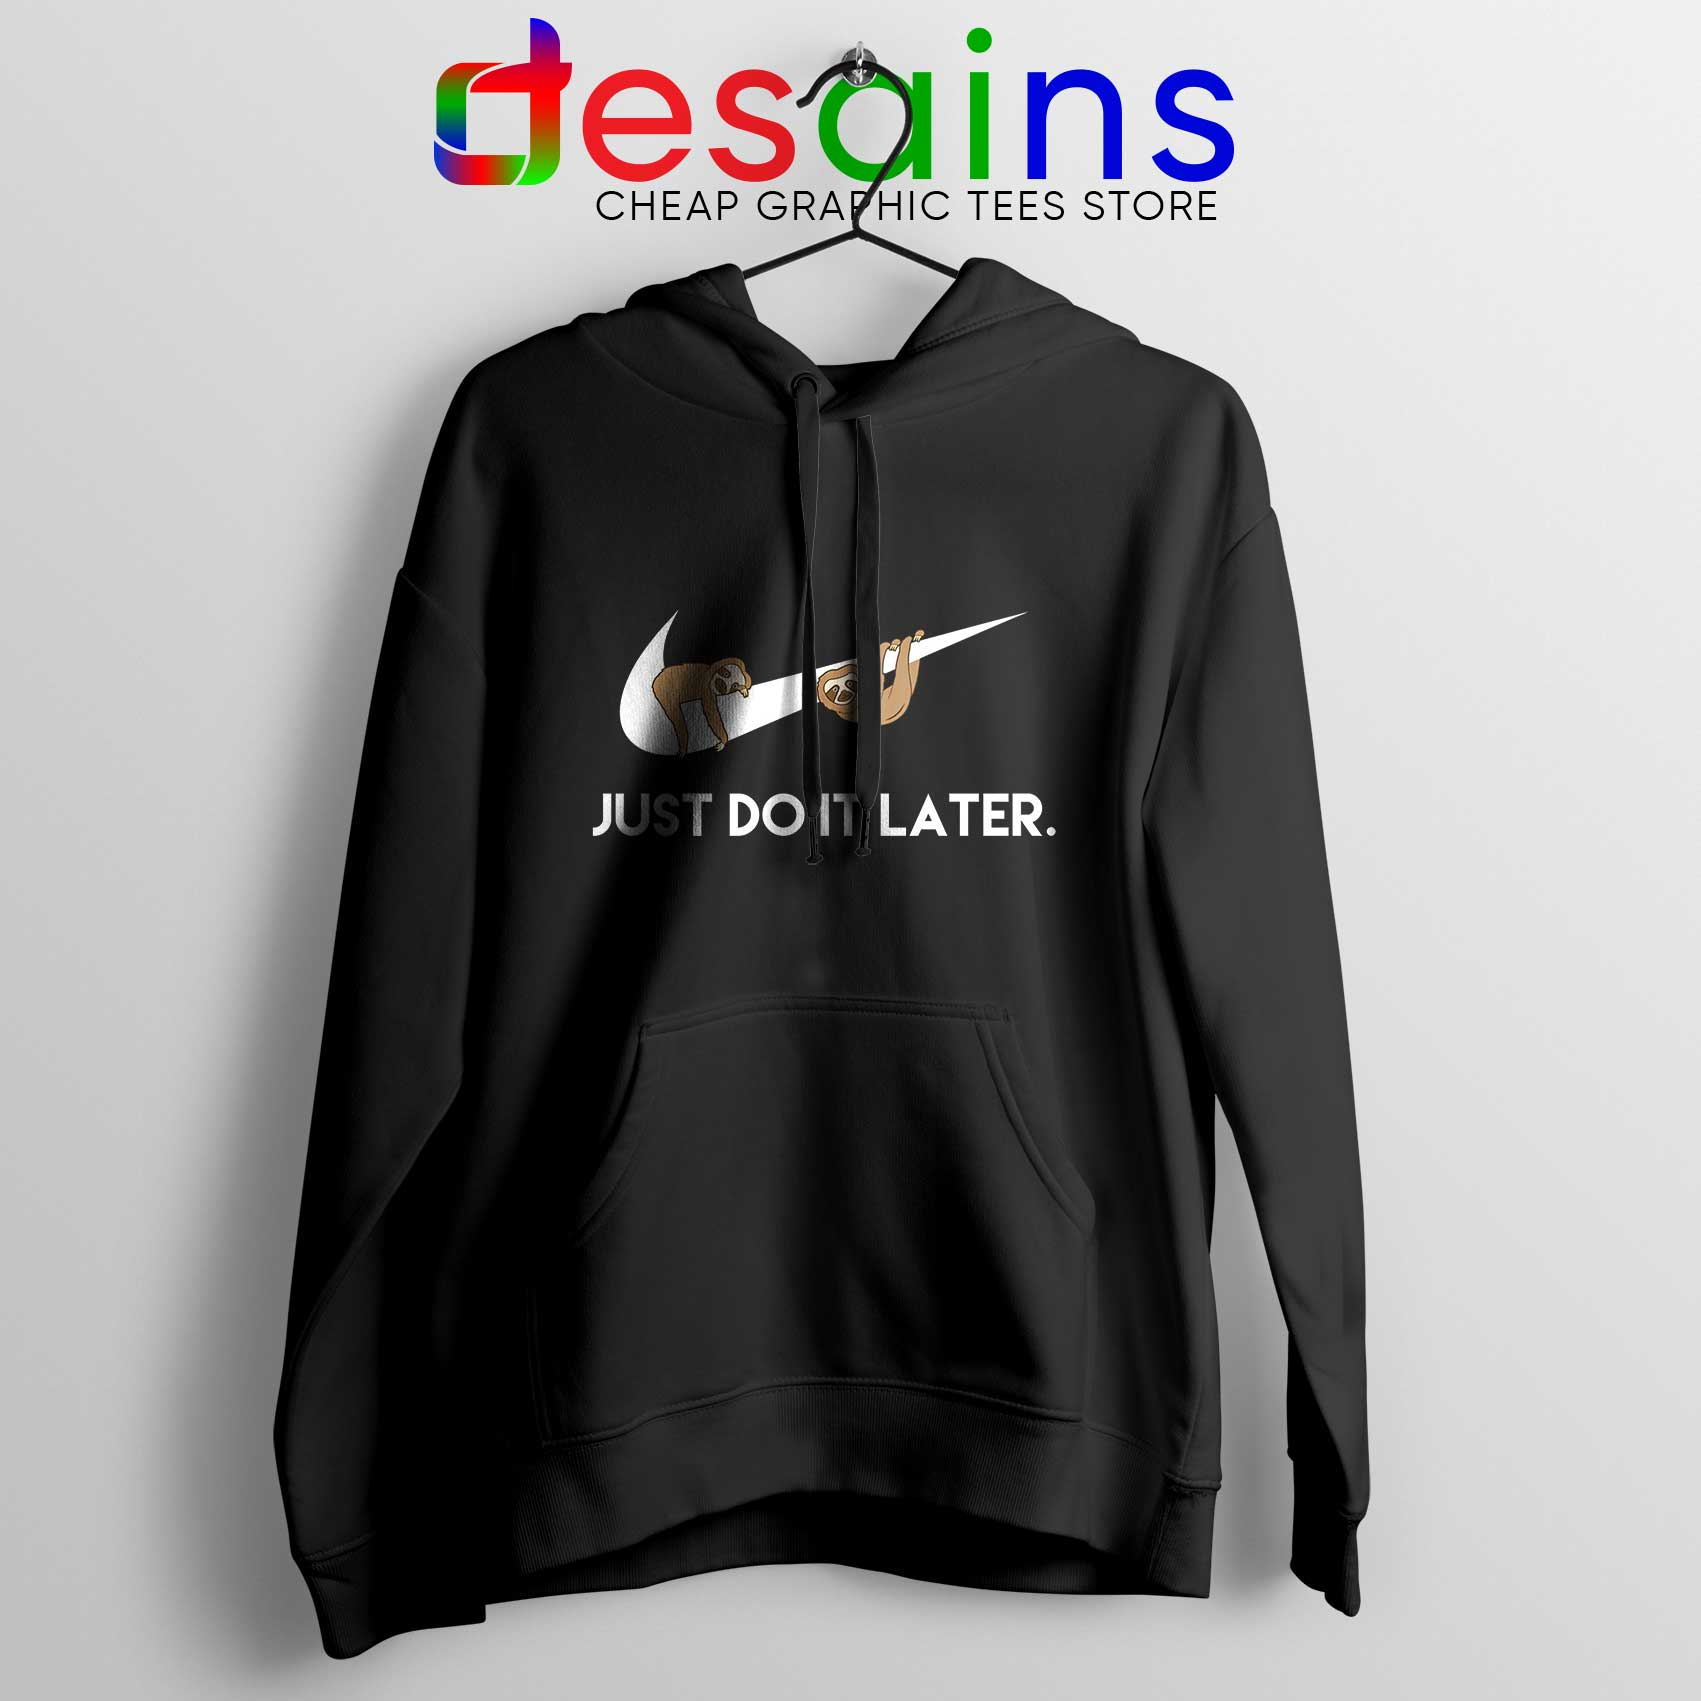 9e10e05b Buy-Hoodie-Sloths-Just-Do-It-Later-Cheap-Hoodies-Size-S-3XL.jpg